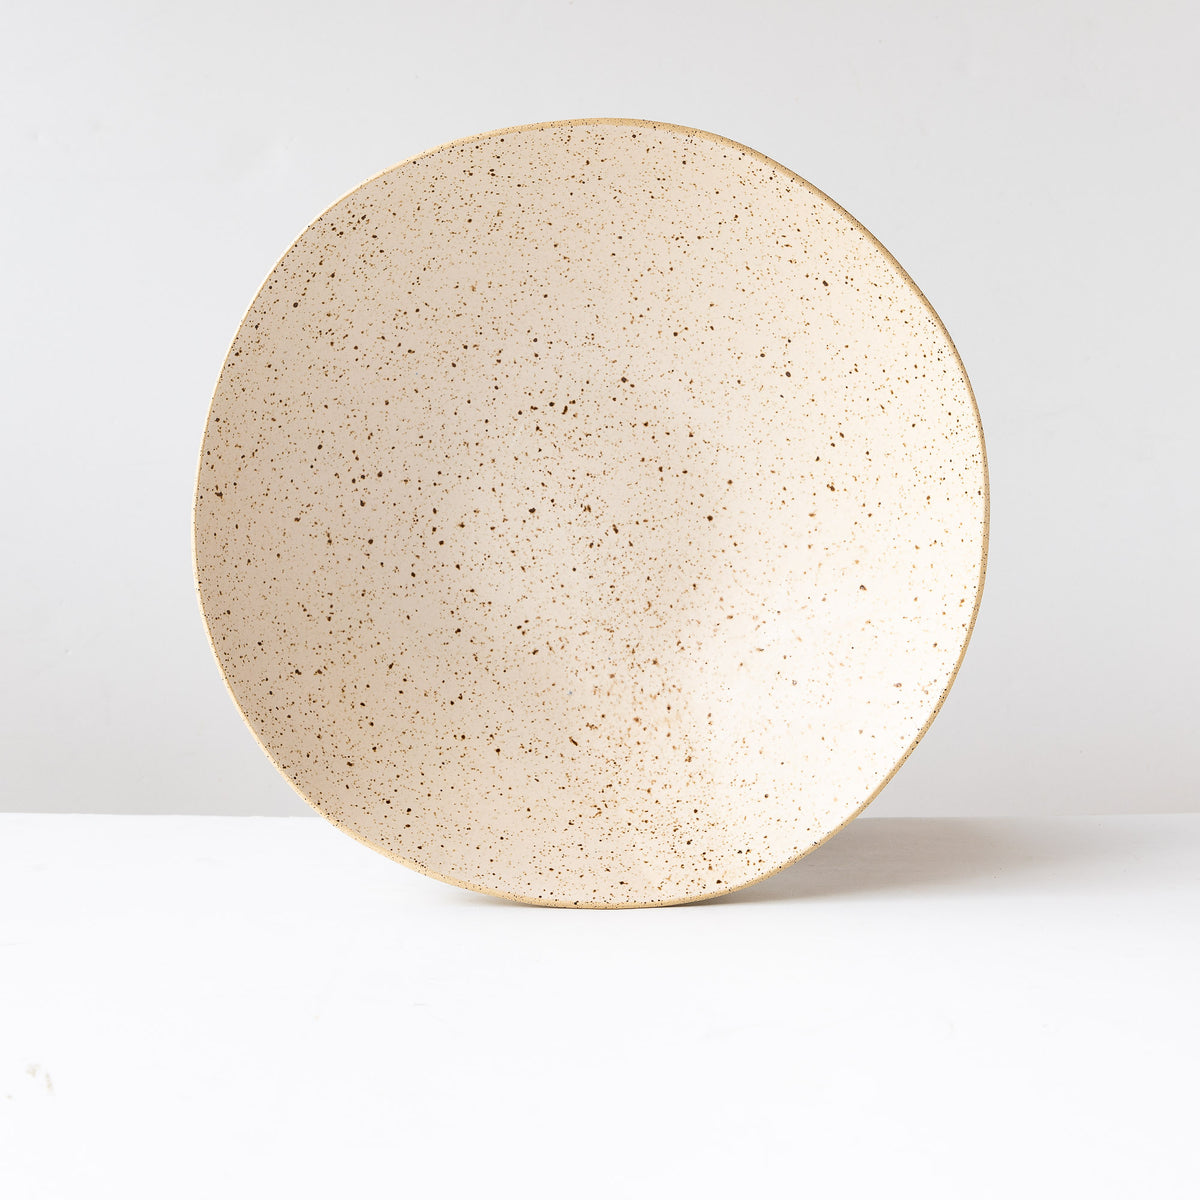 Standing View - Freckled Off-White - Handcrafted Large Freckled Stoneware Fruit Bowl - Sold by Chic & Basta